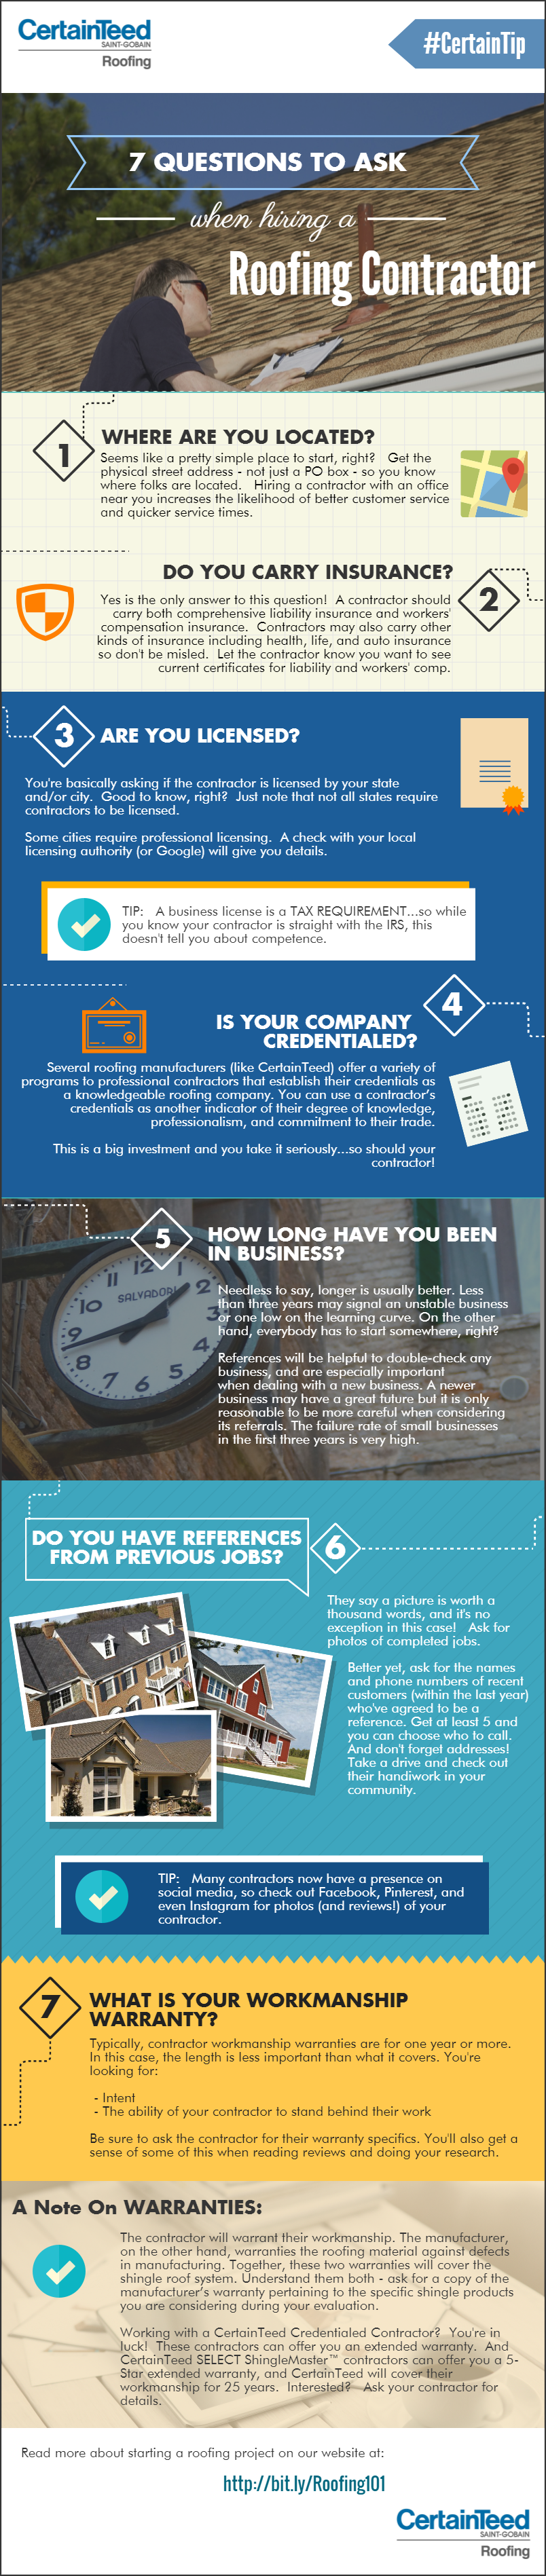 Infographic U2013 7 Questions To Ask When Hiring A Roofing Contractor |  CertainTeed